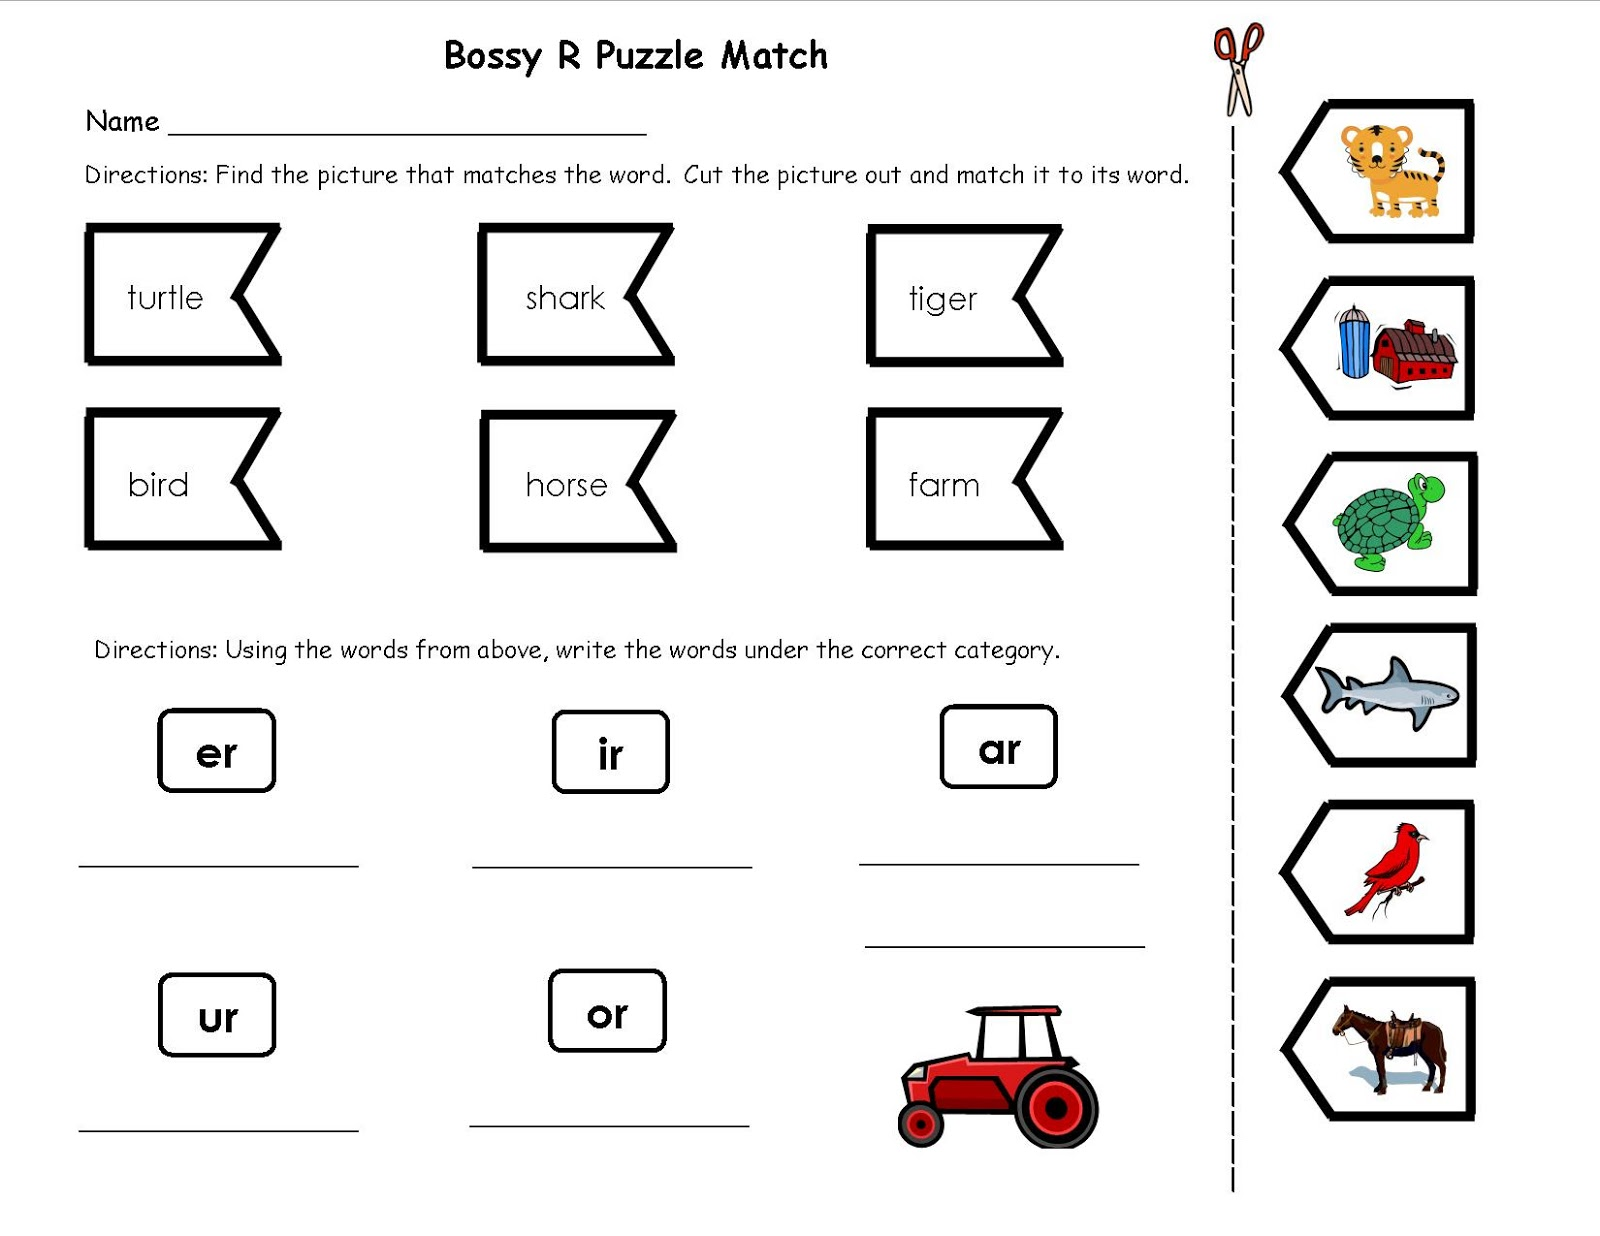 Worksheets Bossy R Worksheets teachers r us bossy activities activities